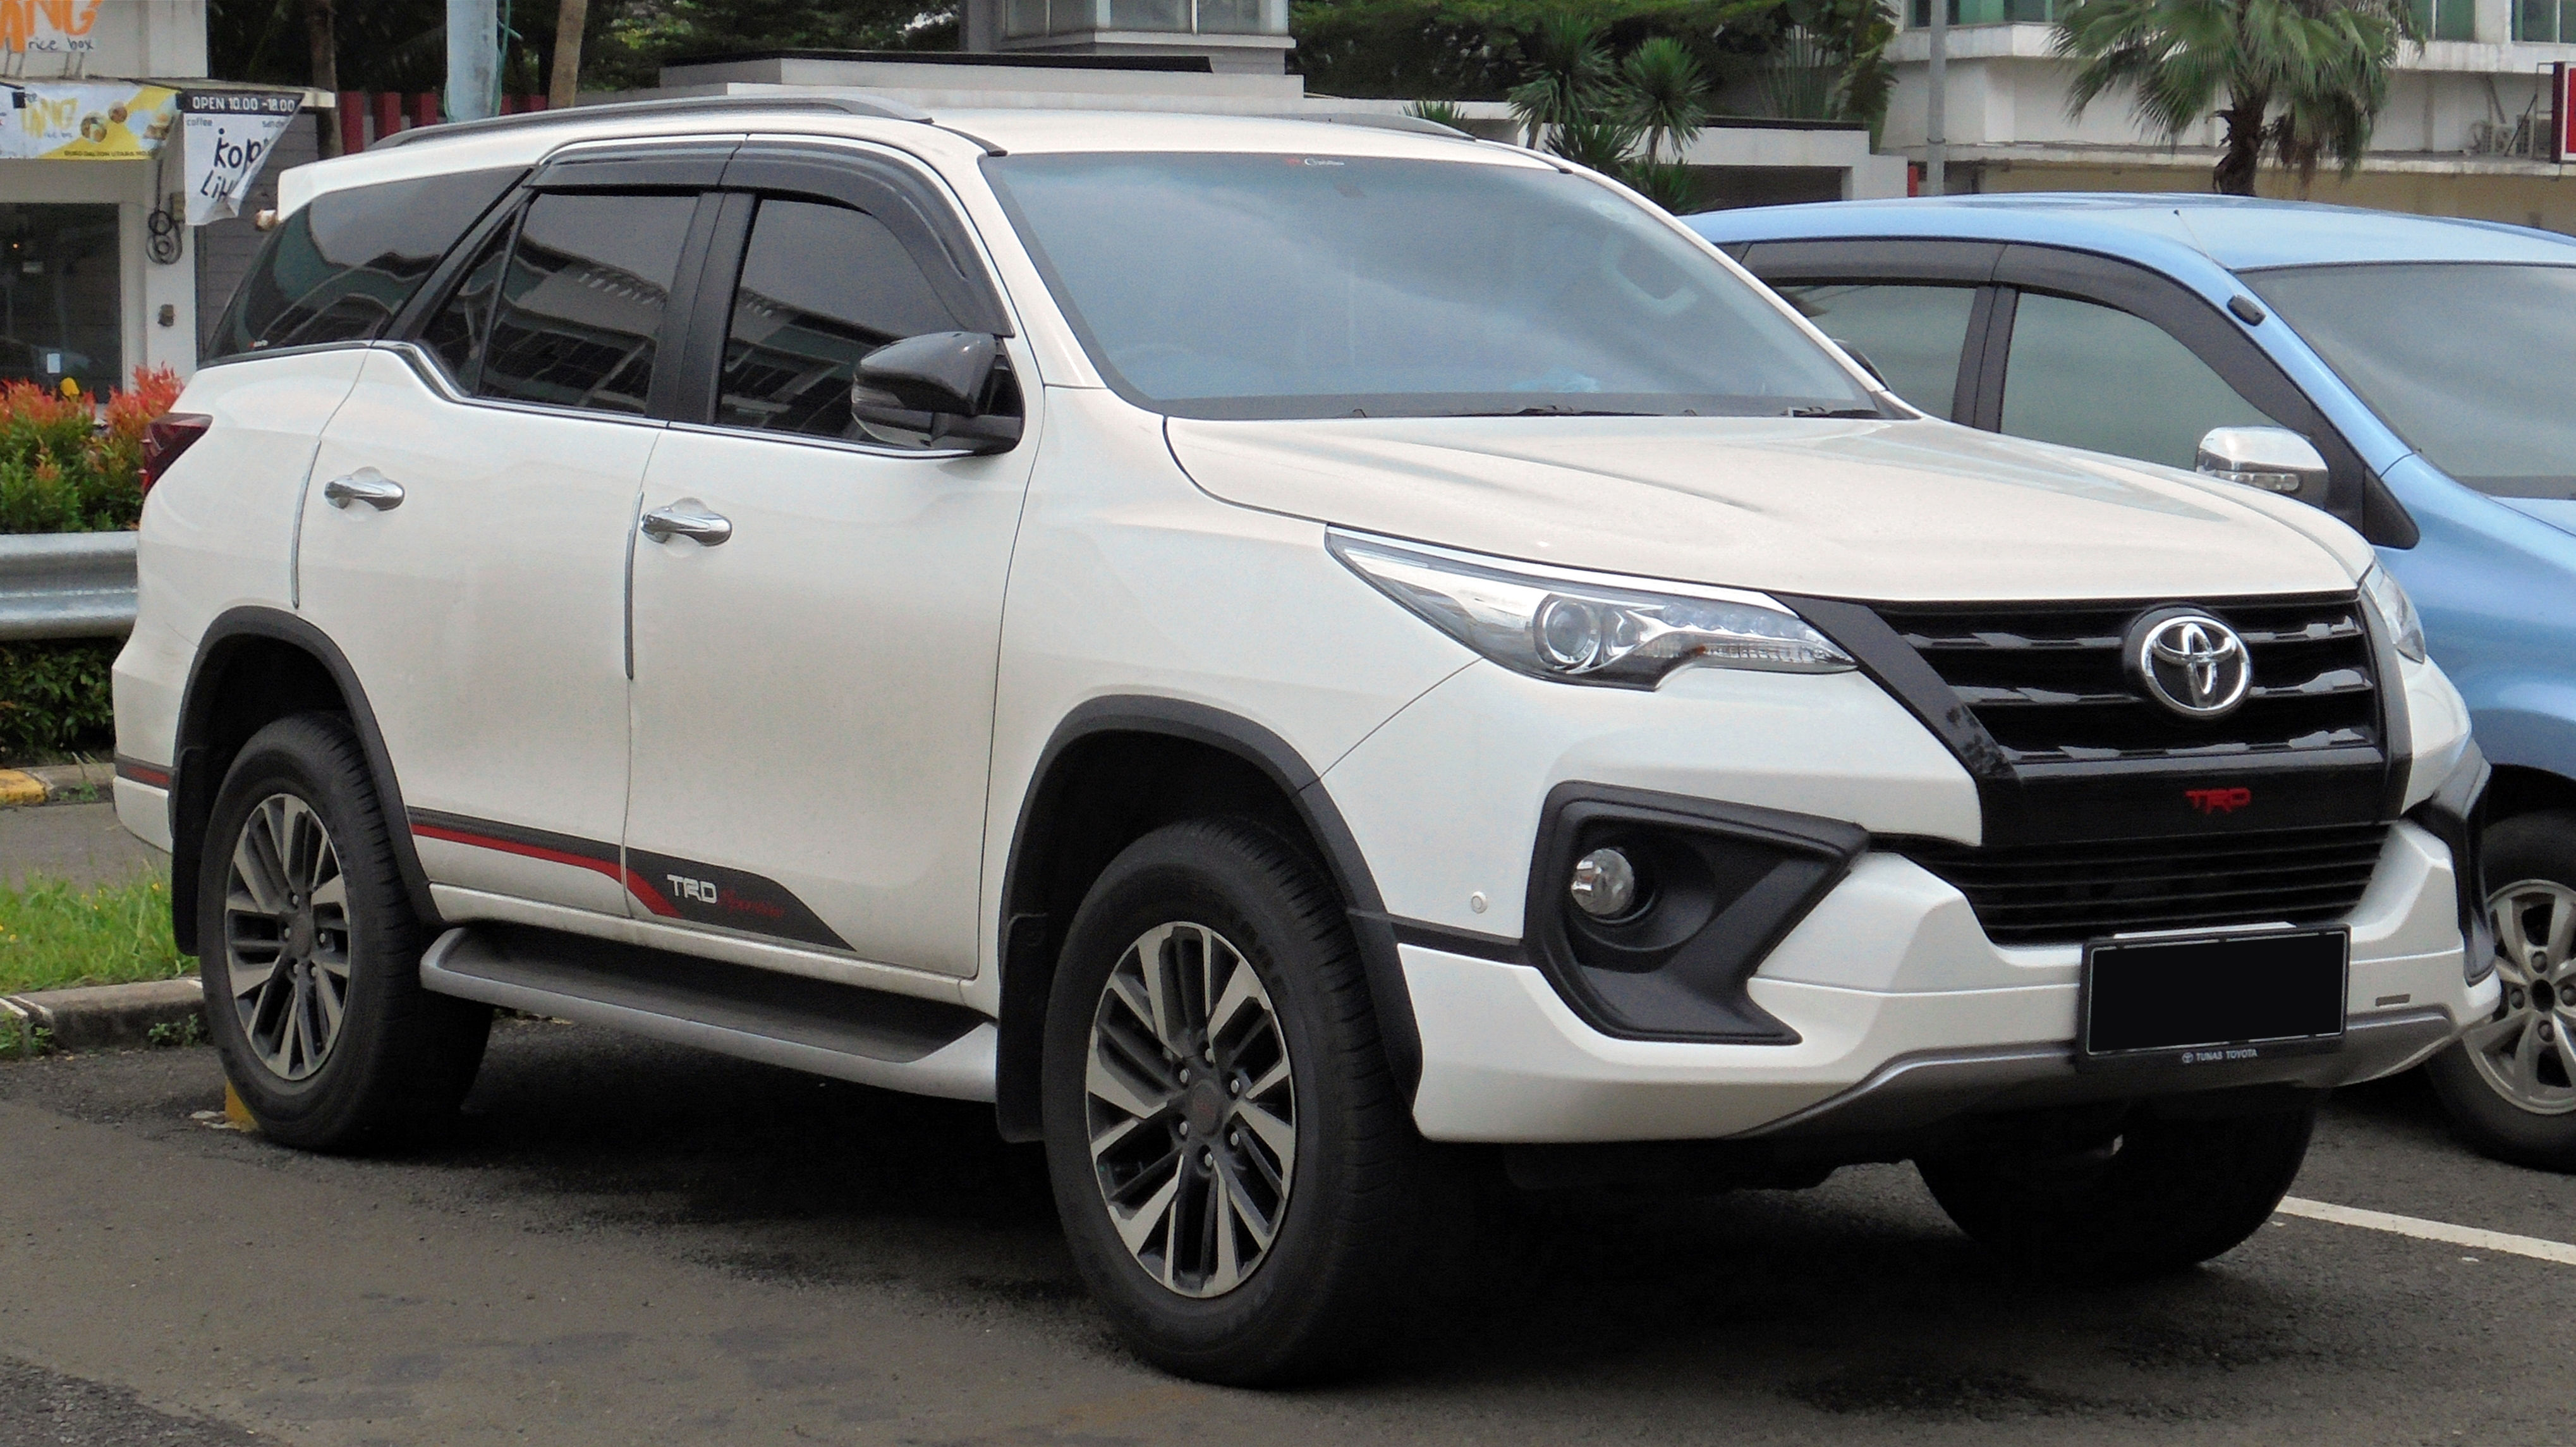 File 2018 Toyota Fortuner 2 4 Vrz Trd Sportivo Wagon Gun165r 01 19 2019 South Tangerang Jpg Wikimedia Commons